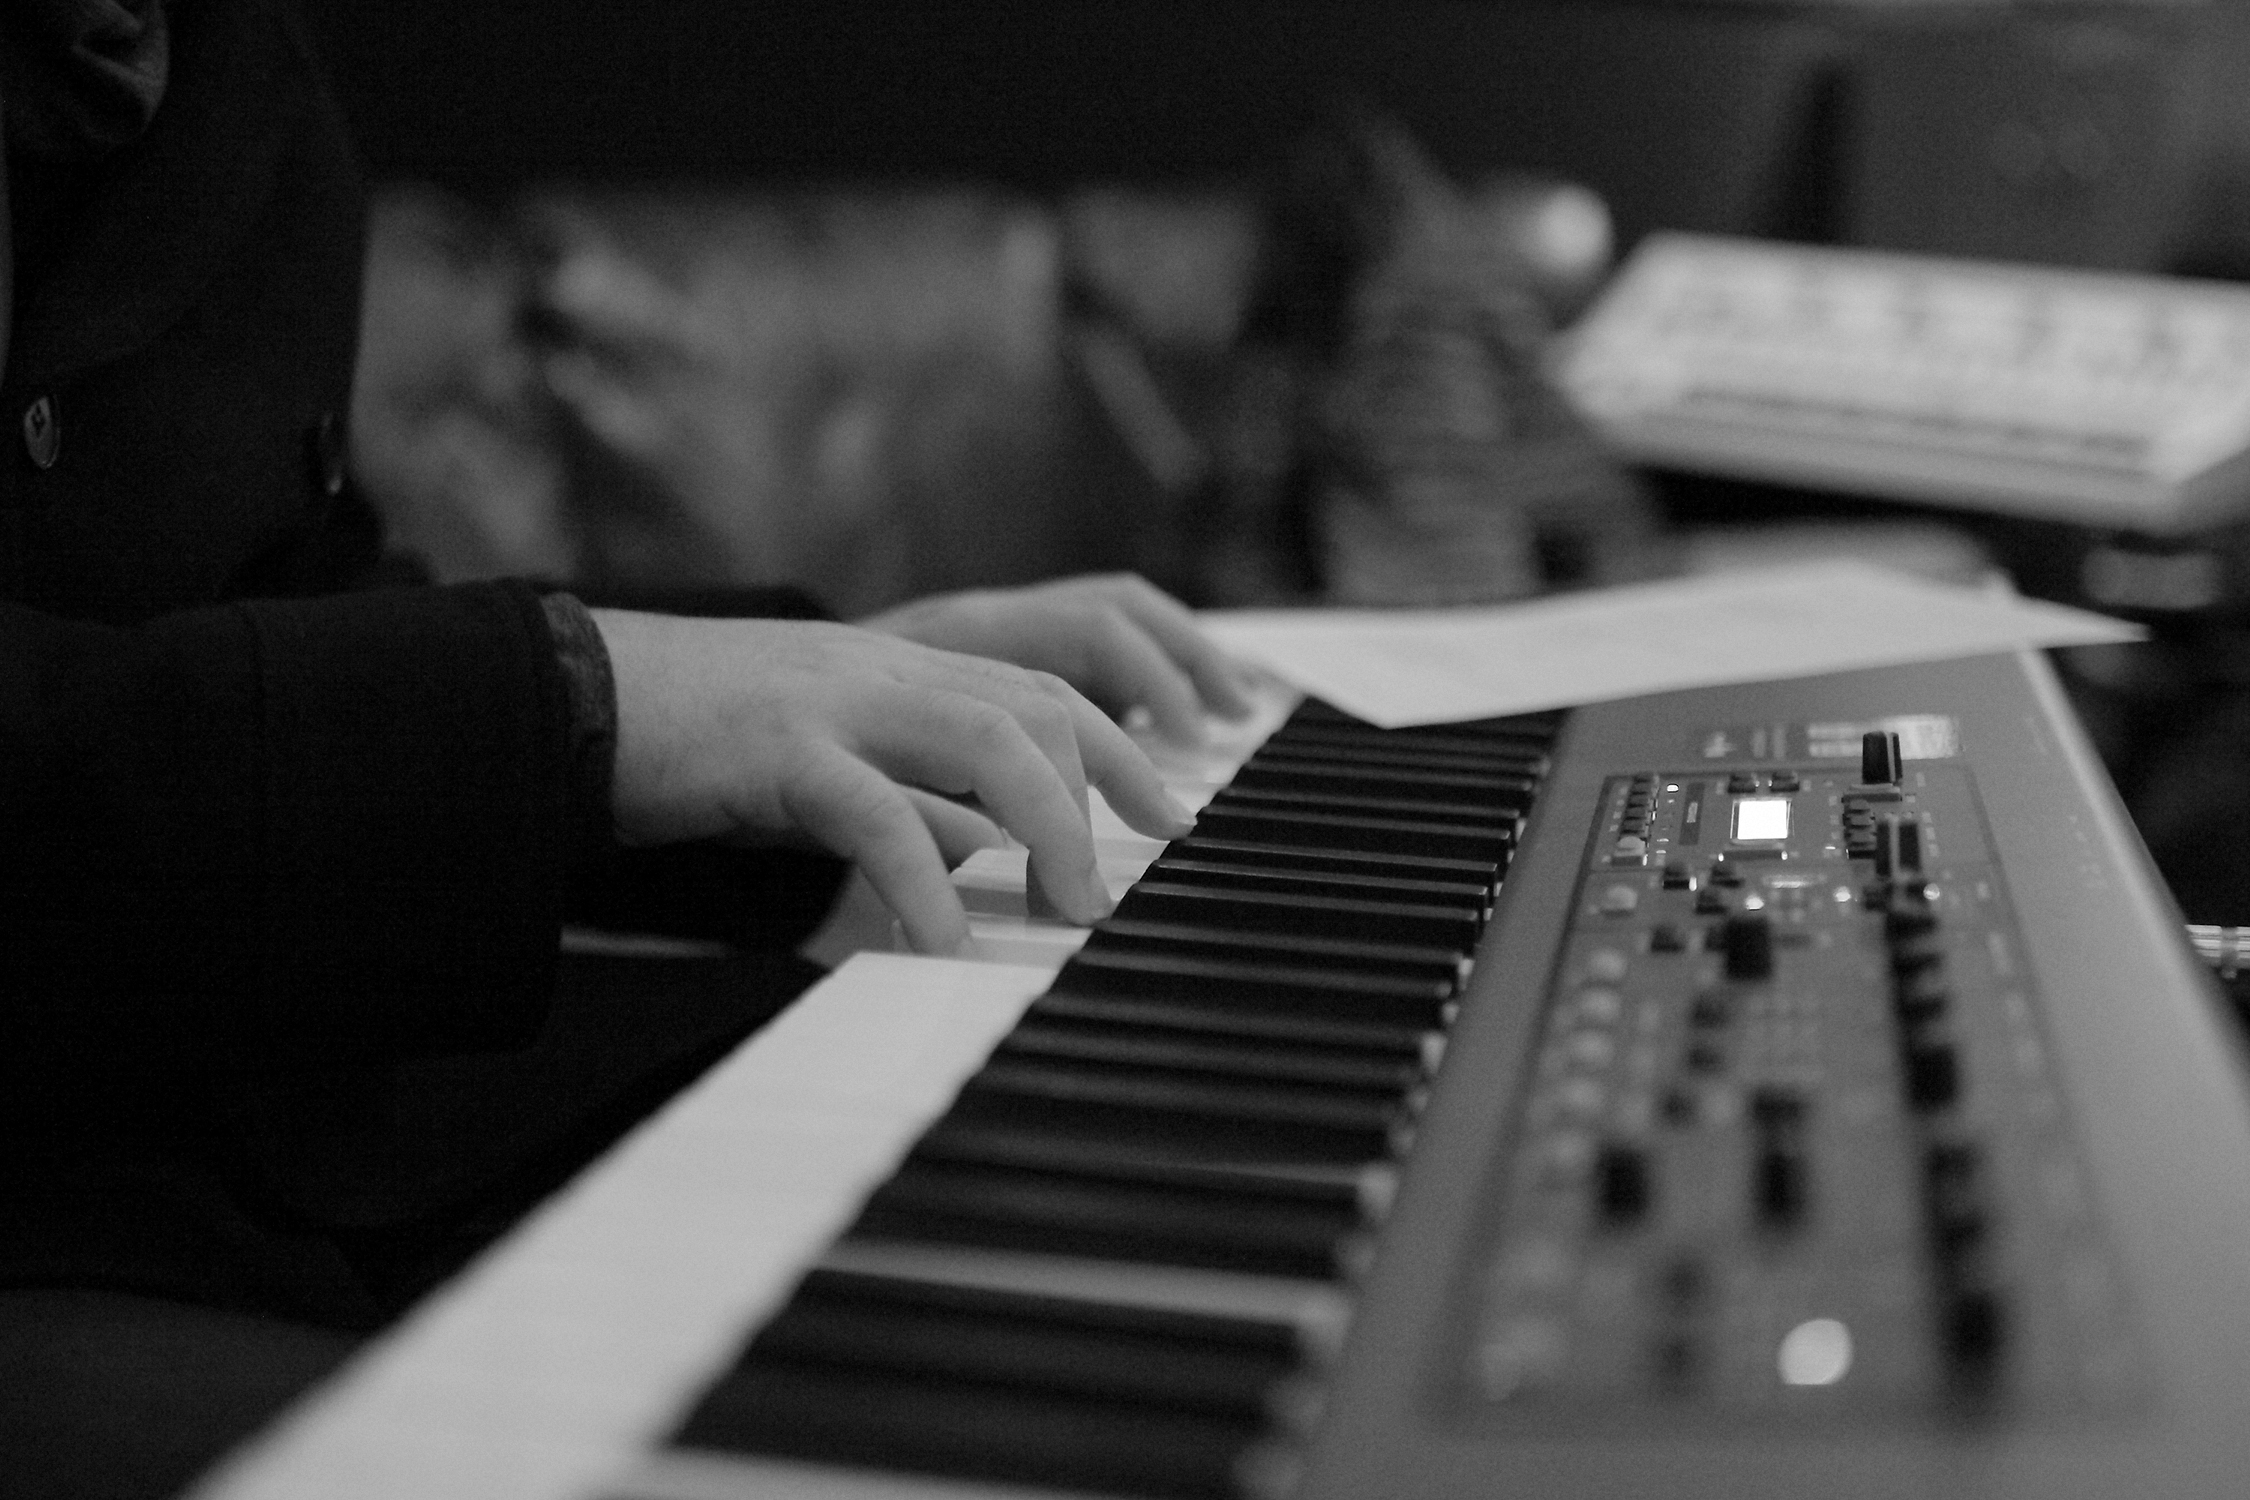 David Willersdorf putting down 'live keyboard' guides during the recording of his 'Fire This Love' album at Sputnik Sounds studios in East Nashville. [Photo Credit: Price Harrison]